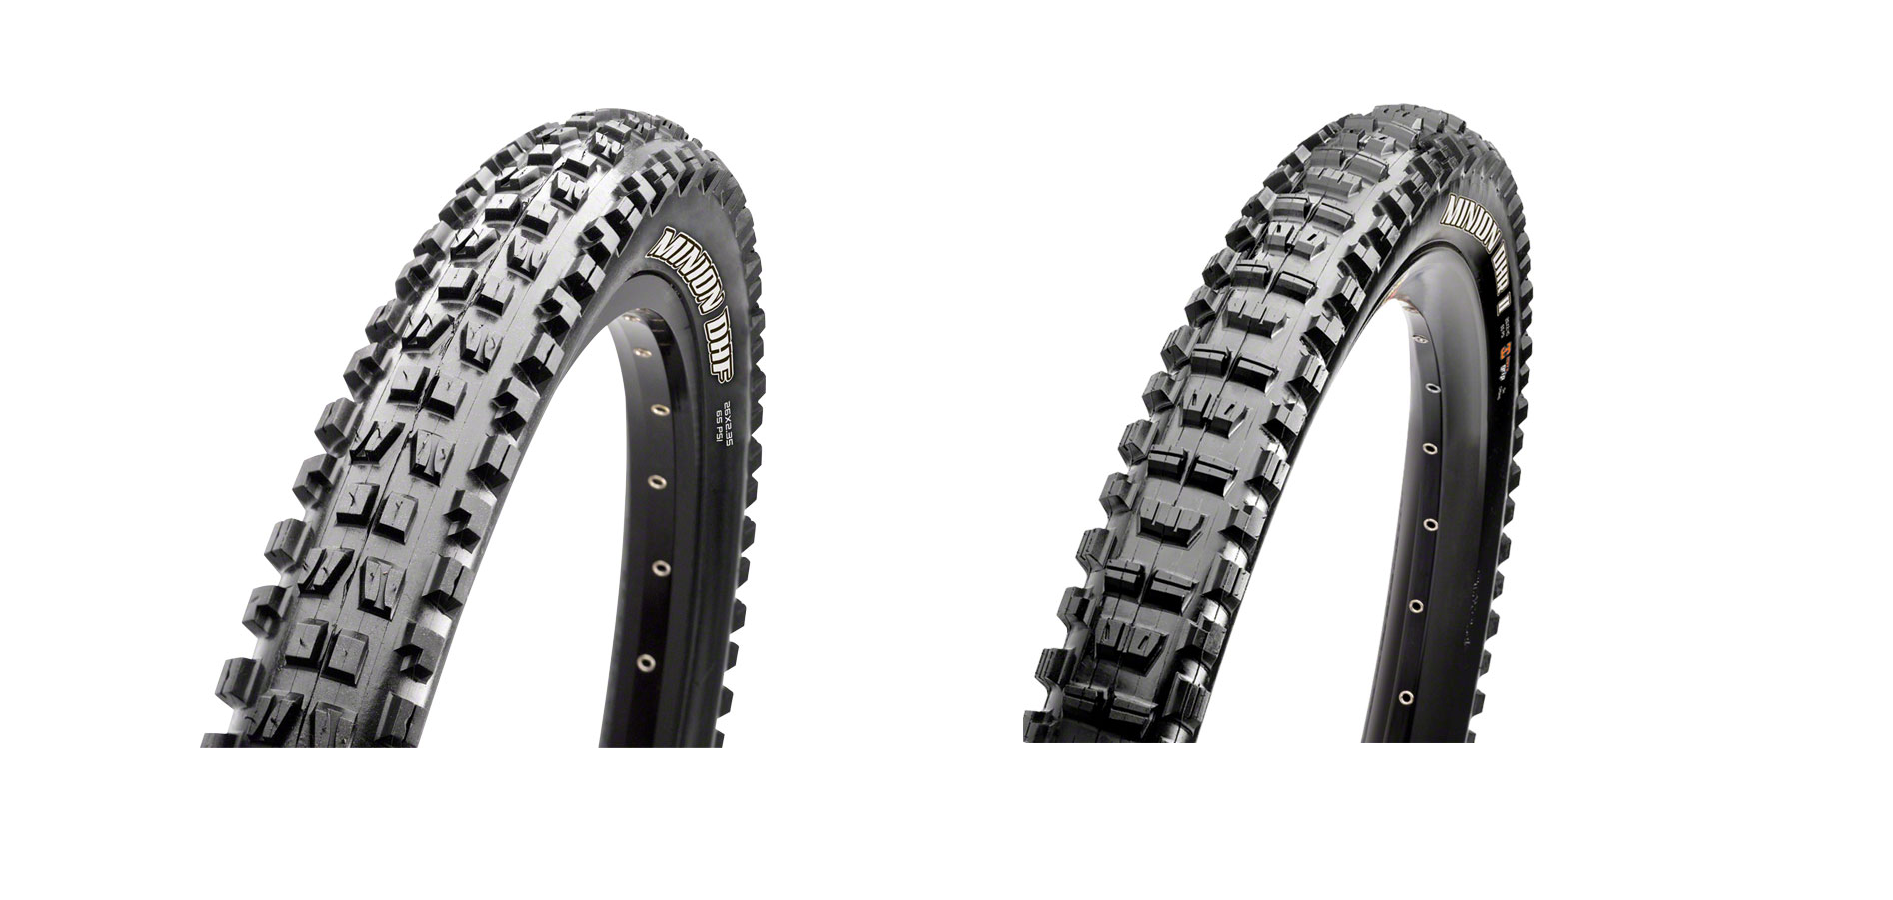 Maxxis Minion DHF 29x2.3 and DHR II 29x2.3 Tire Combo EXO Tubeless Ready 2C MPN: TB96785000, TB96776000 Tires Minion DHF Tire